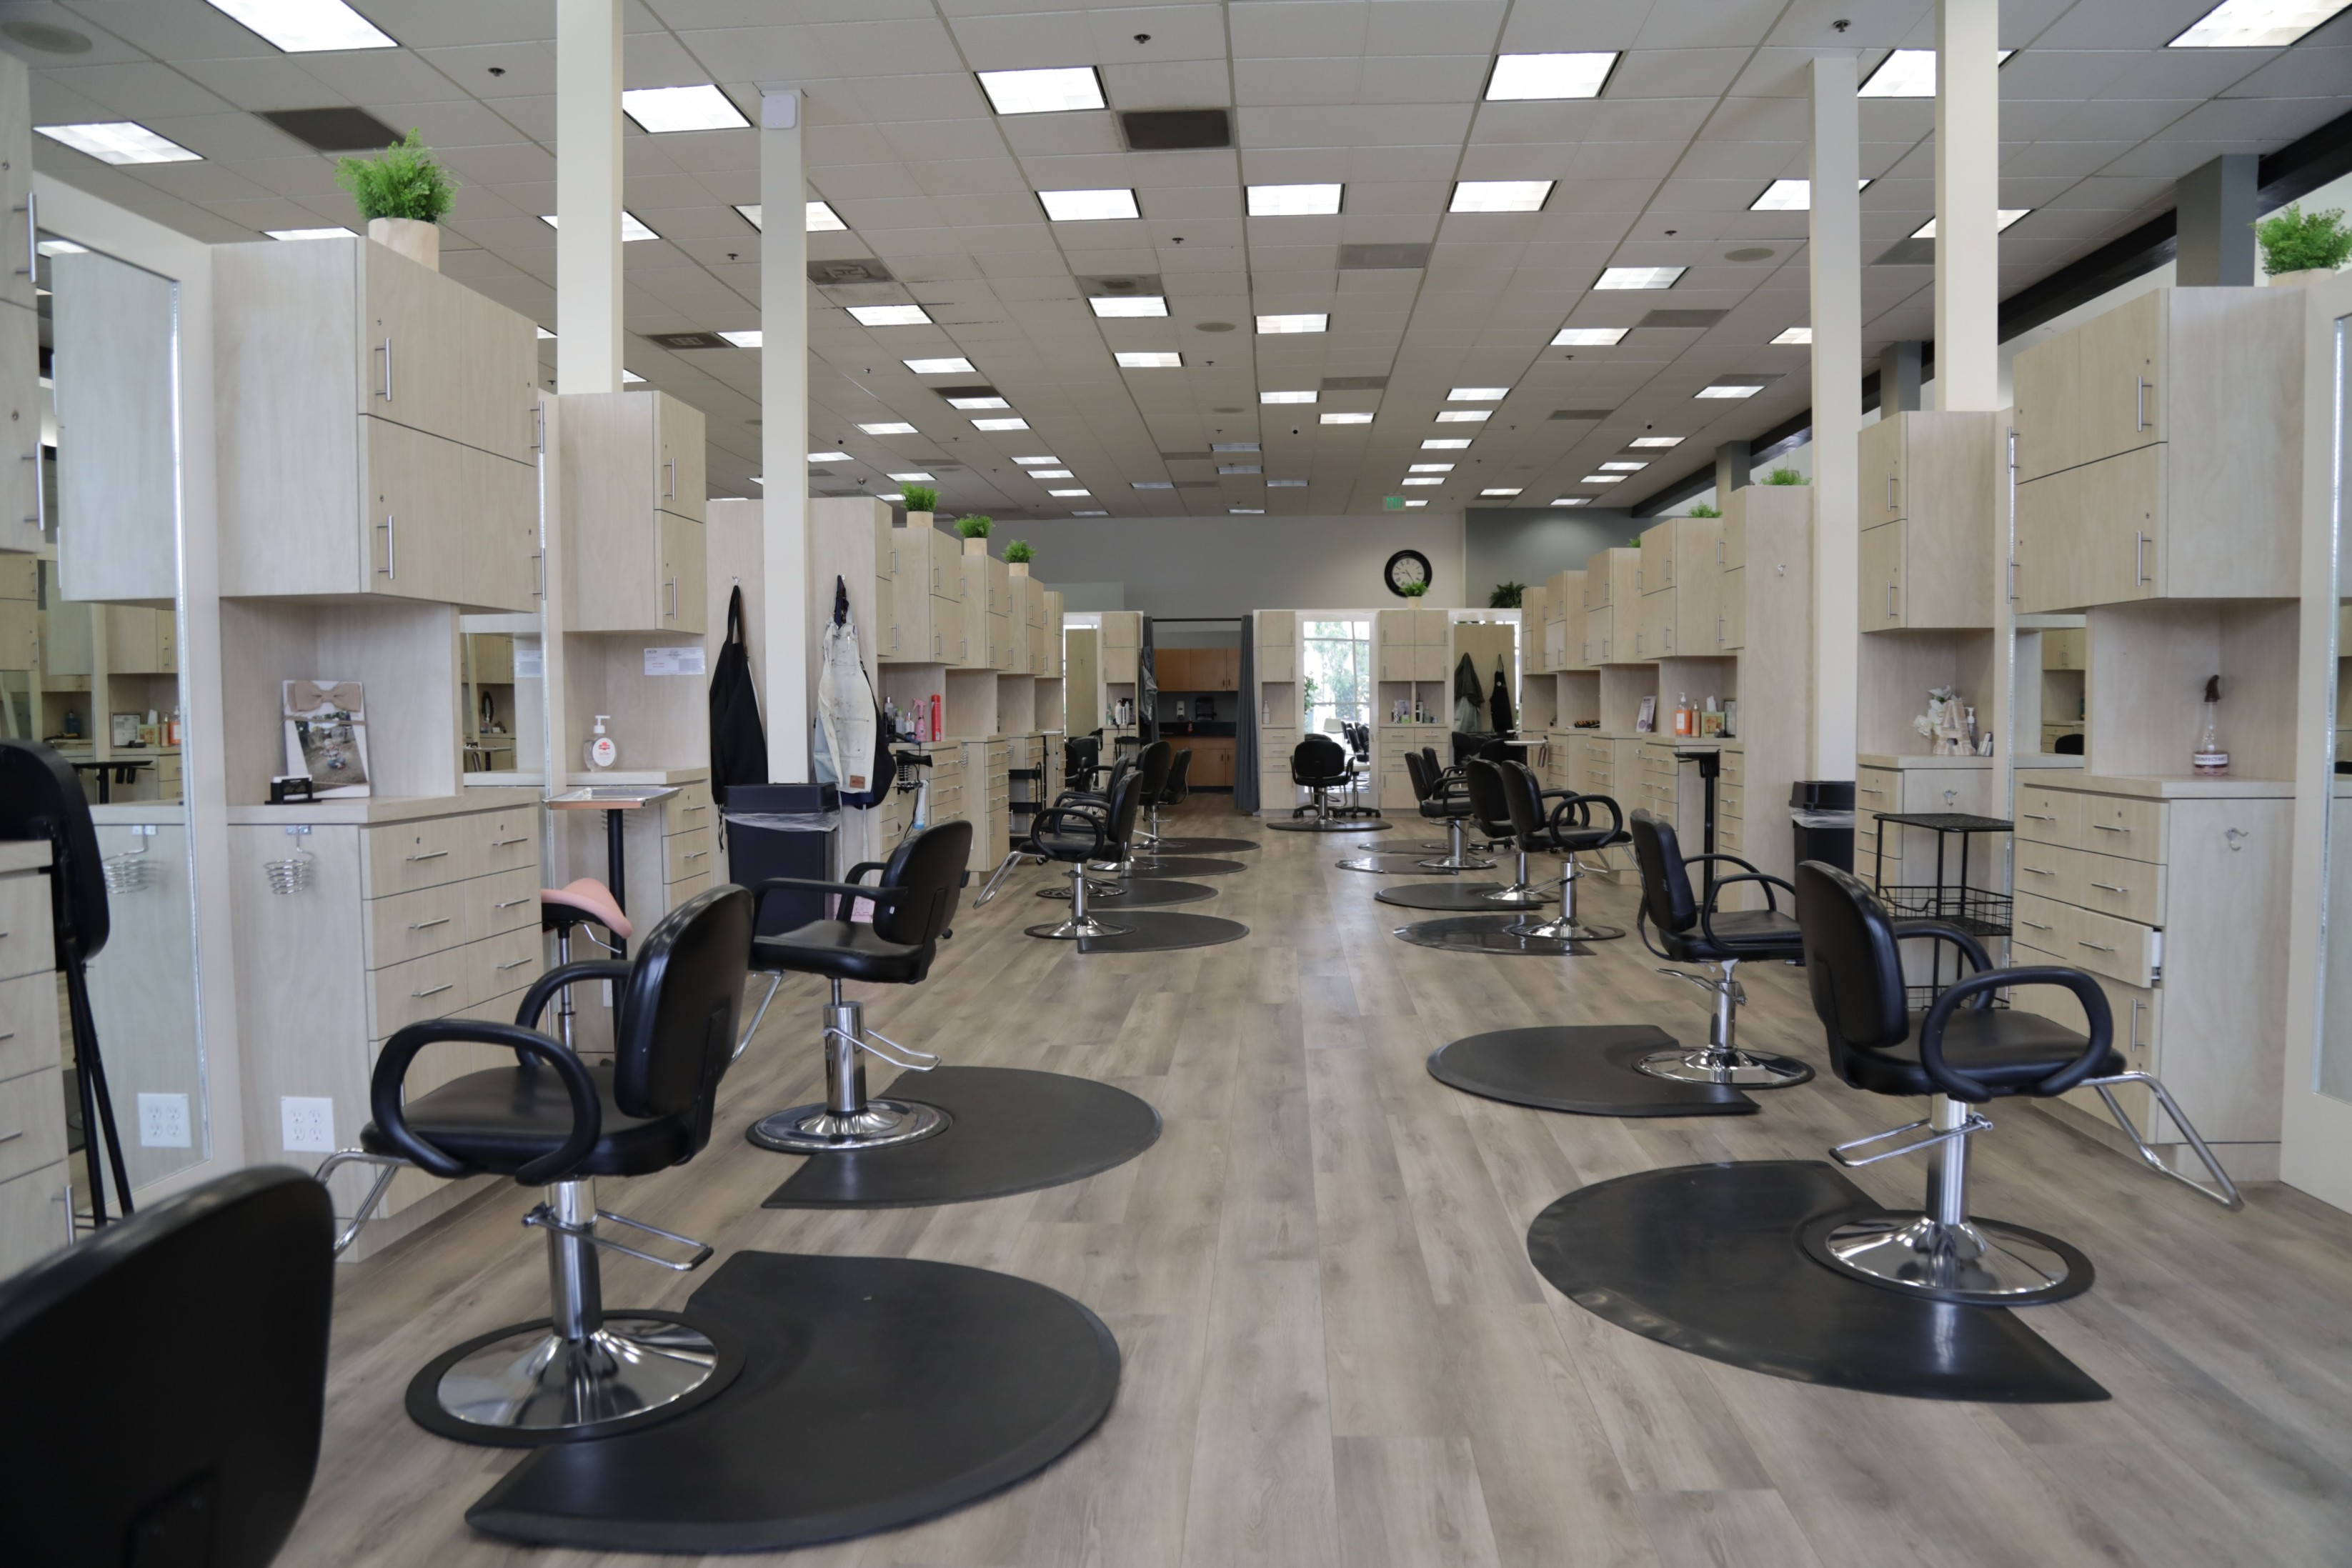 Hair Stylist to Help with 100+ Walk-ins per Month